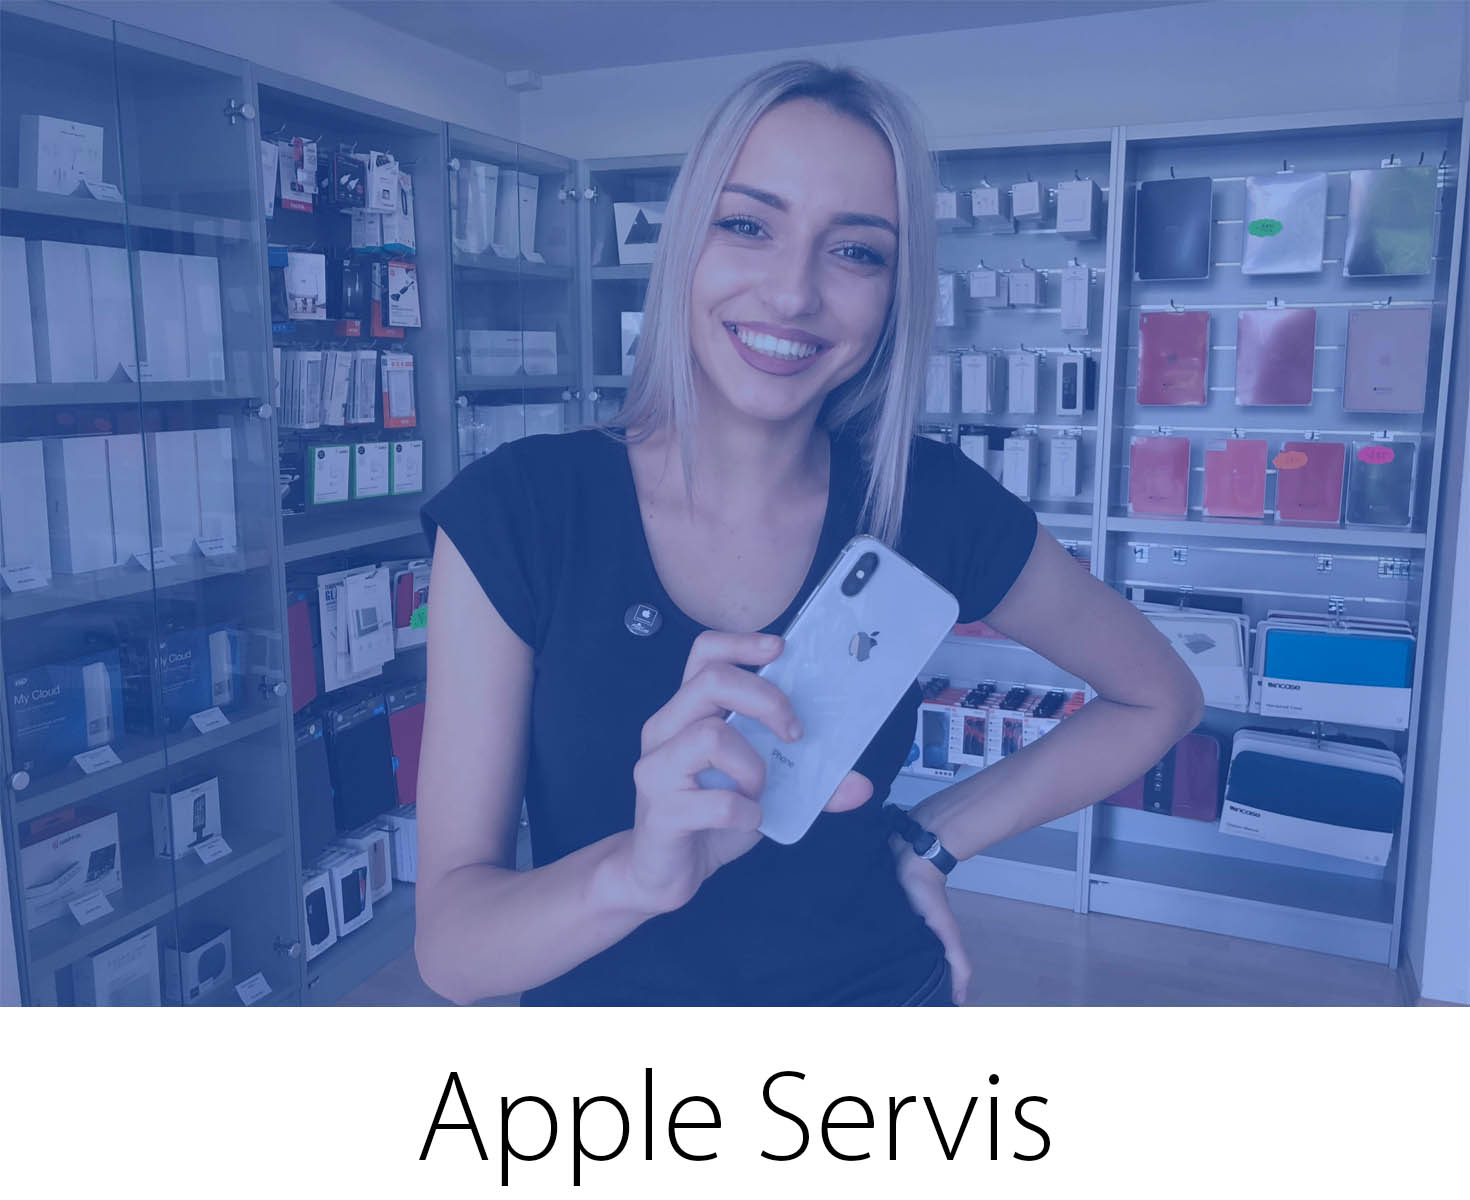 appleservis copy